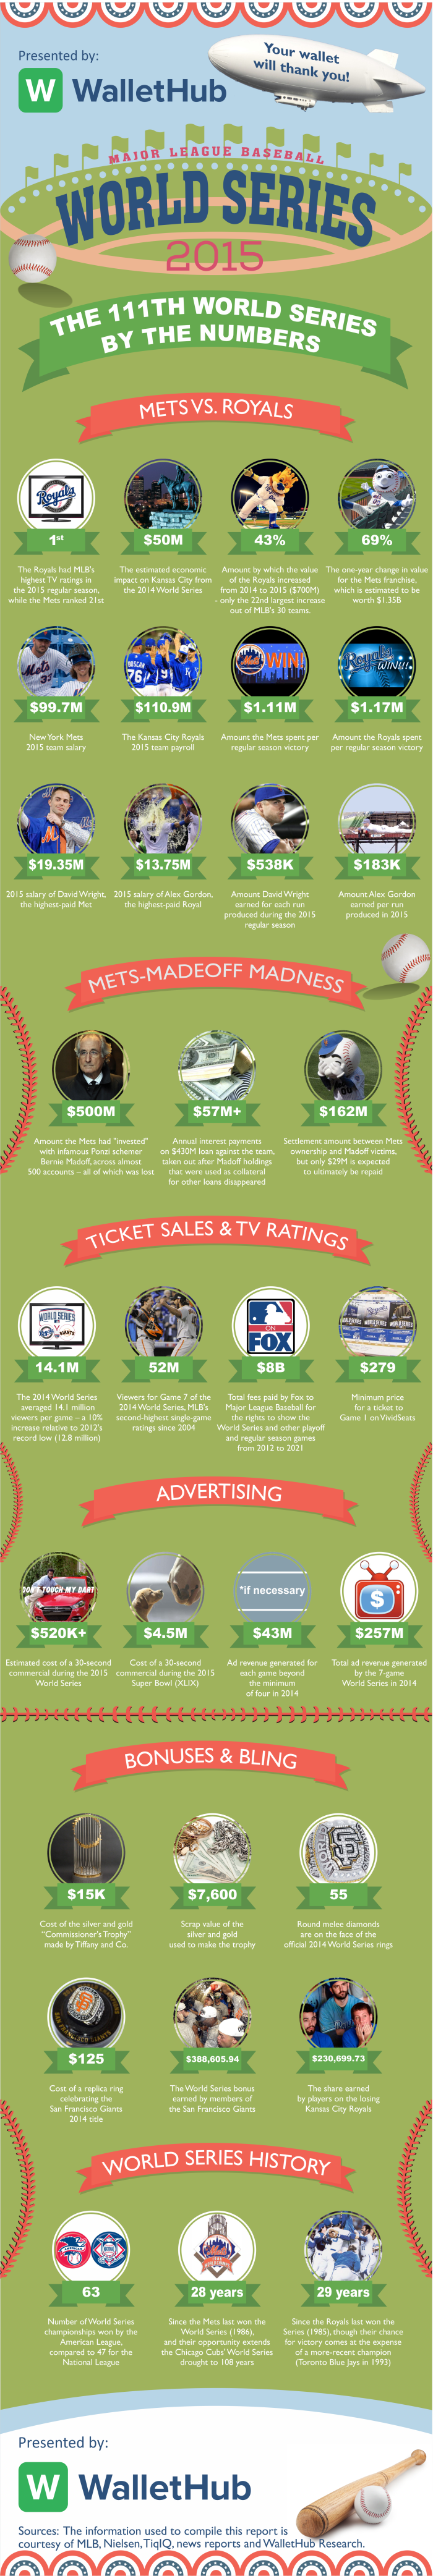 world-series-by-the-numbers-2015